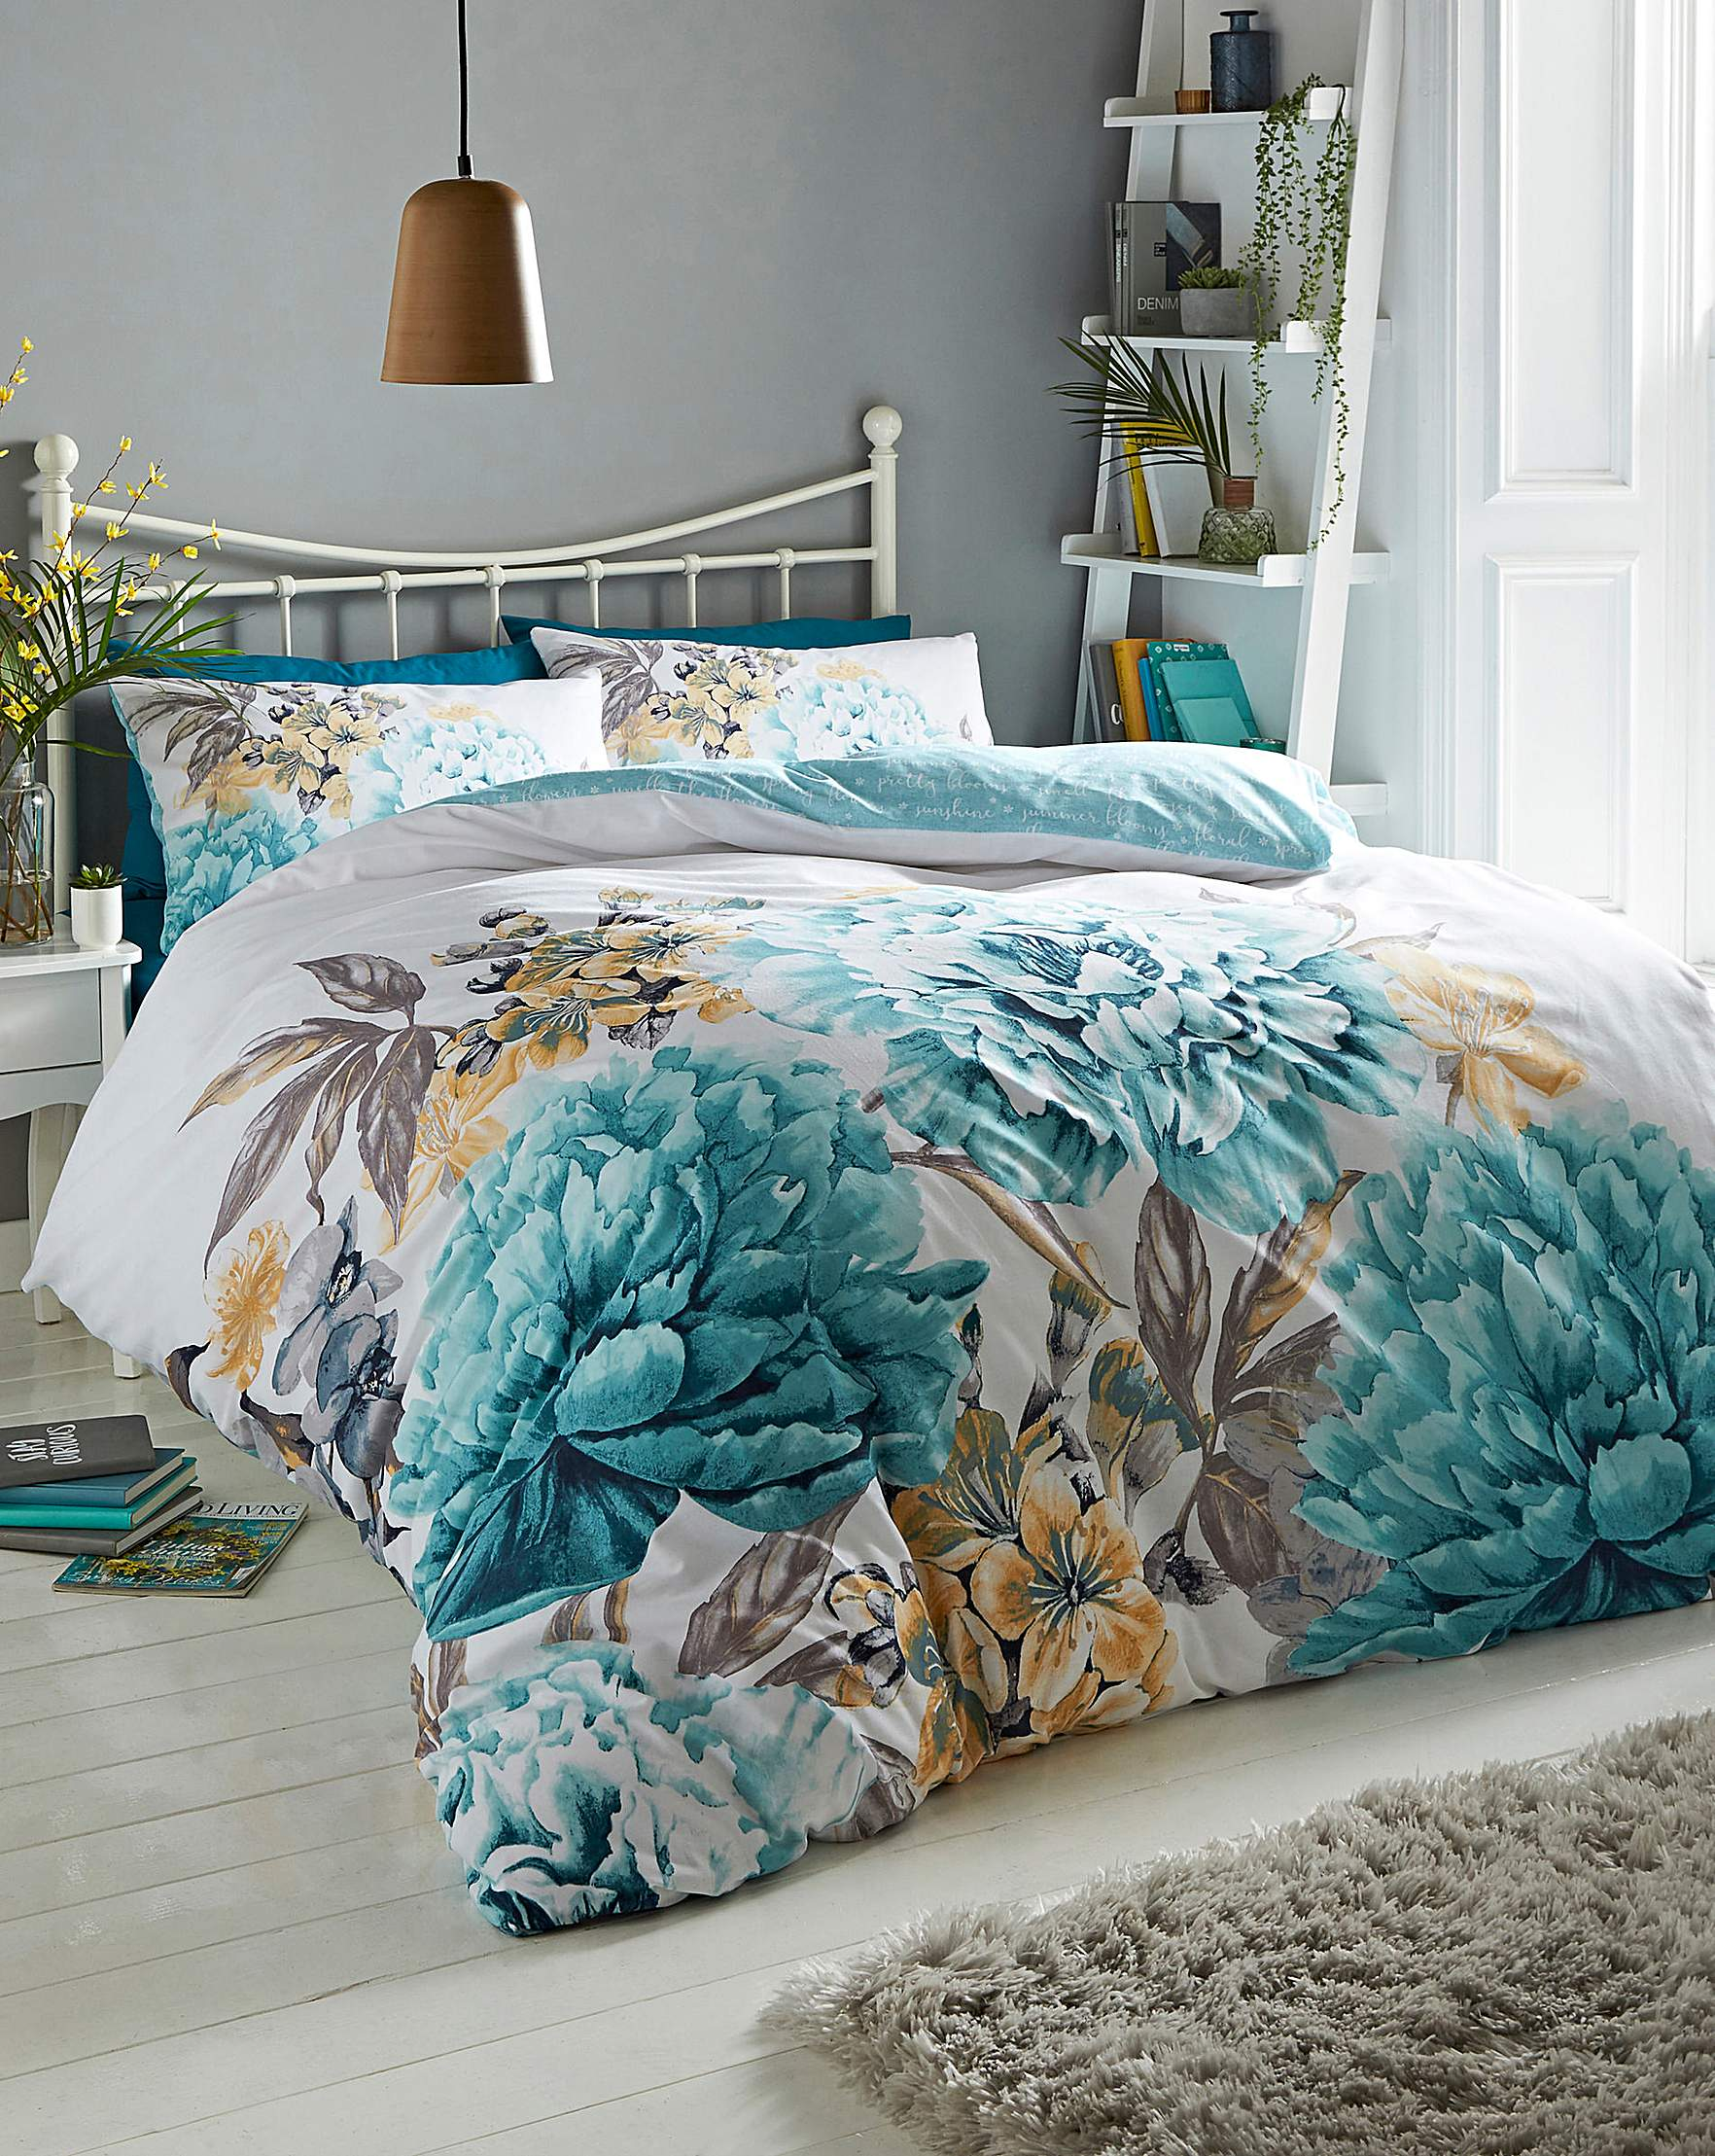 set today free shipping duvet zone overstock bedding piece mi santorini product cover teal bath